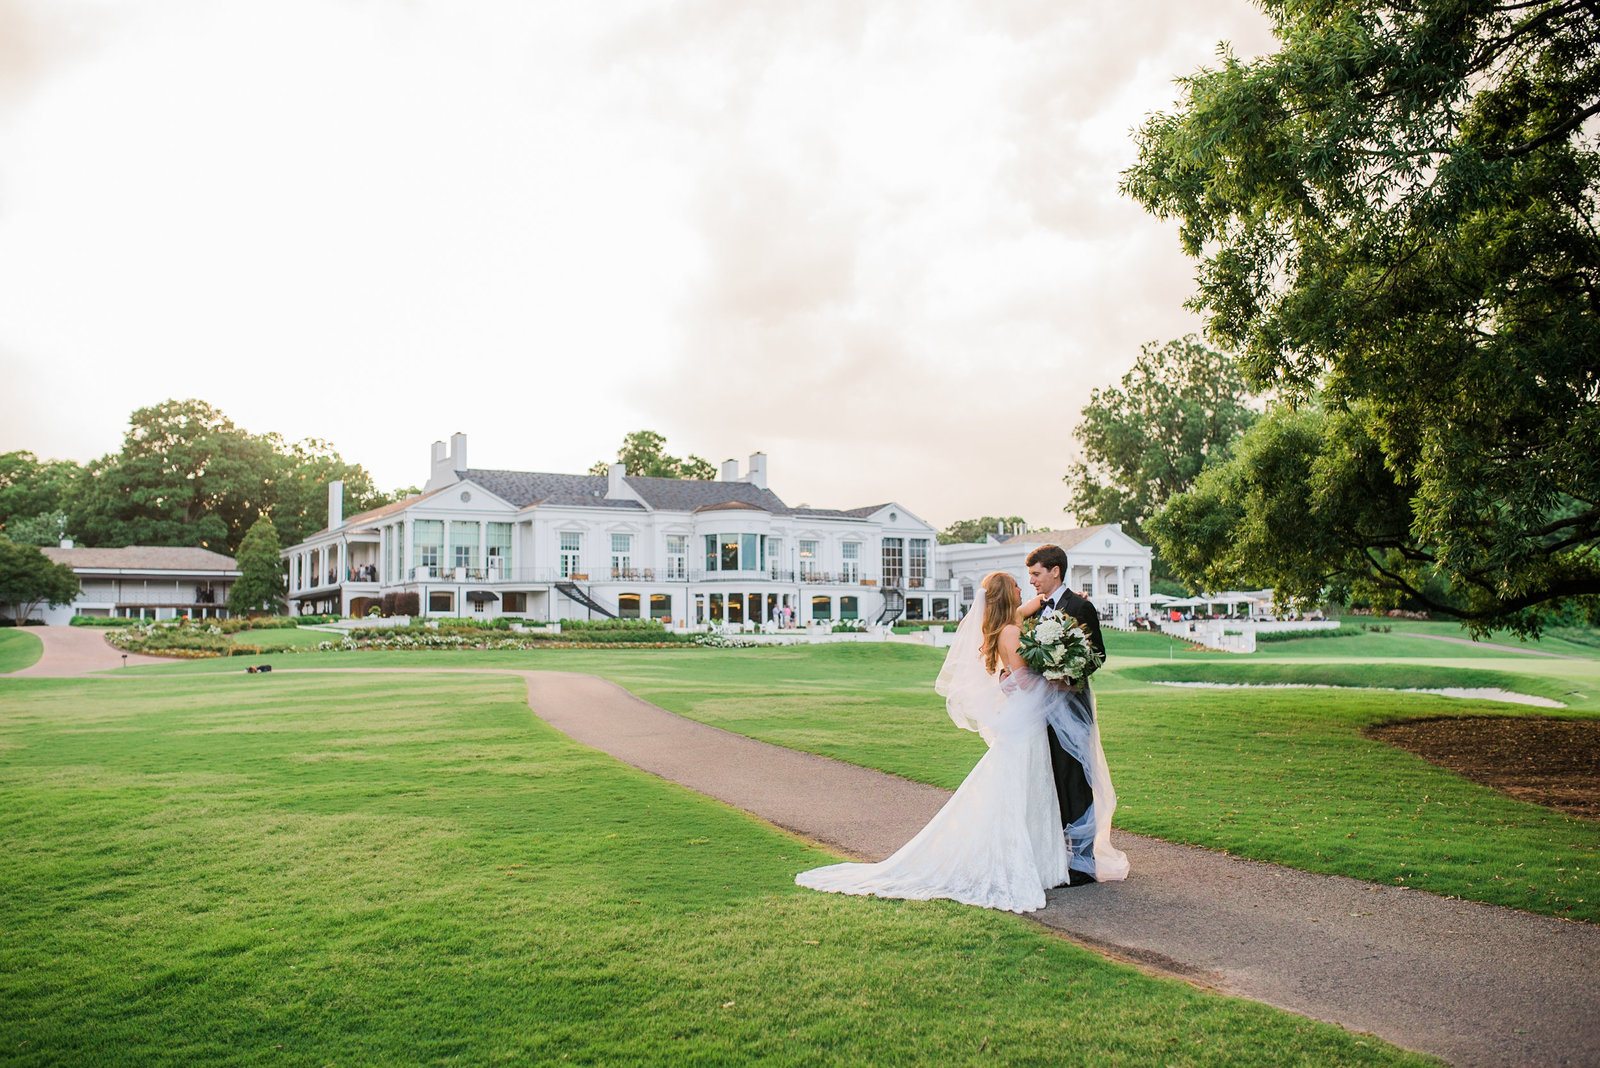 StevenandChandler|CharlotteCountryClubWedding32